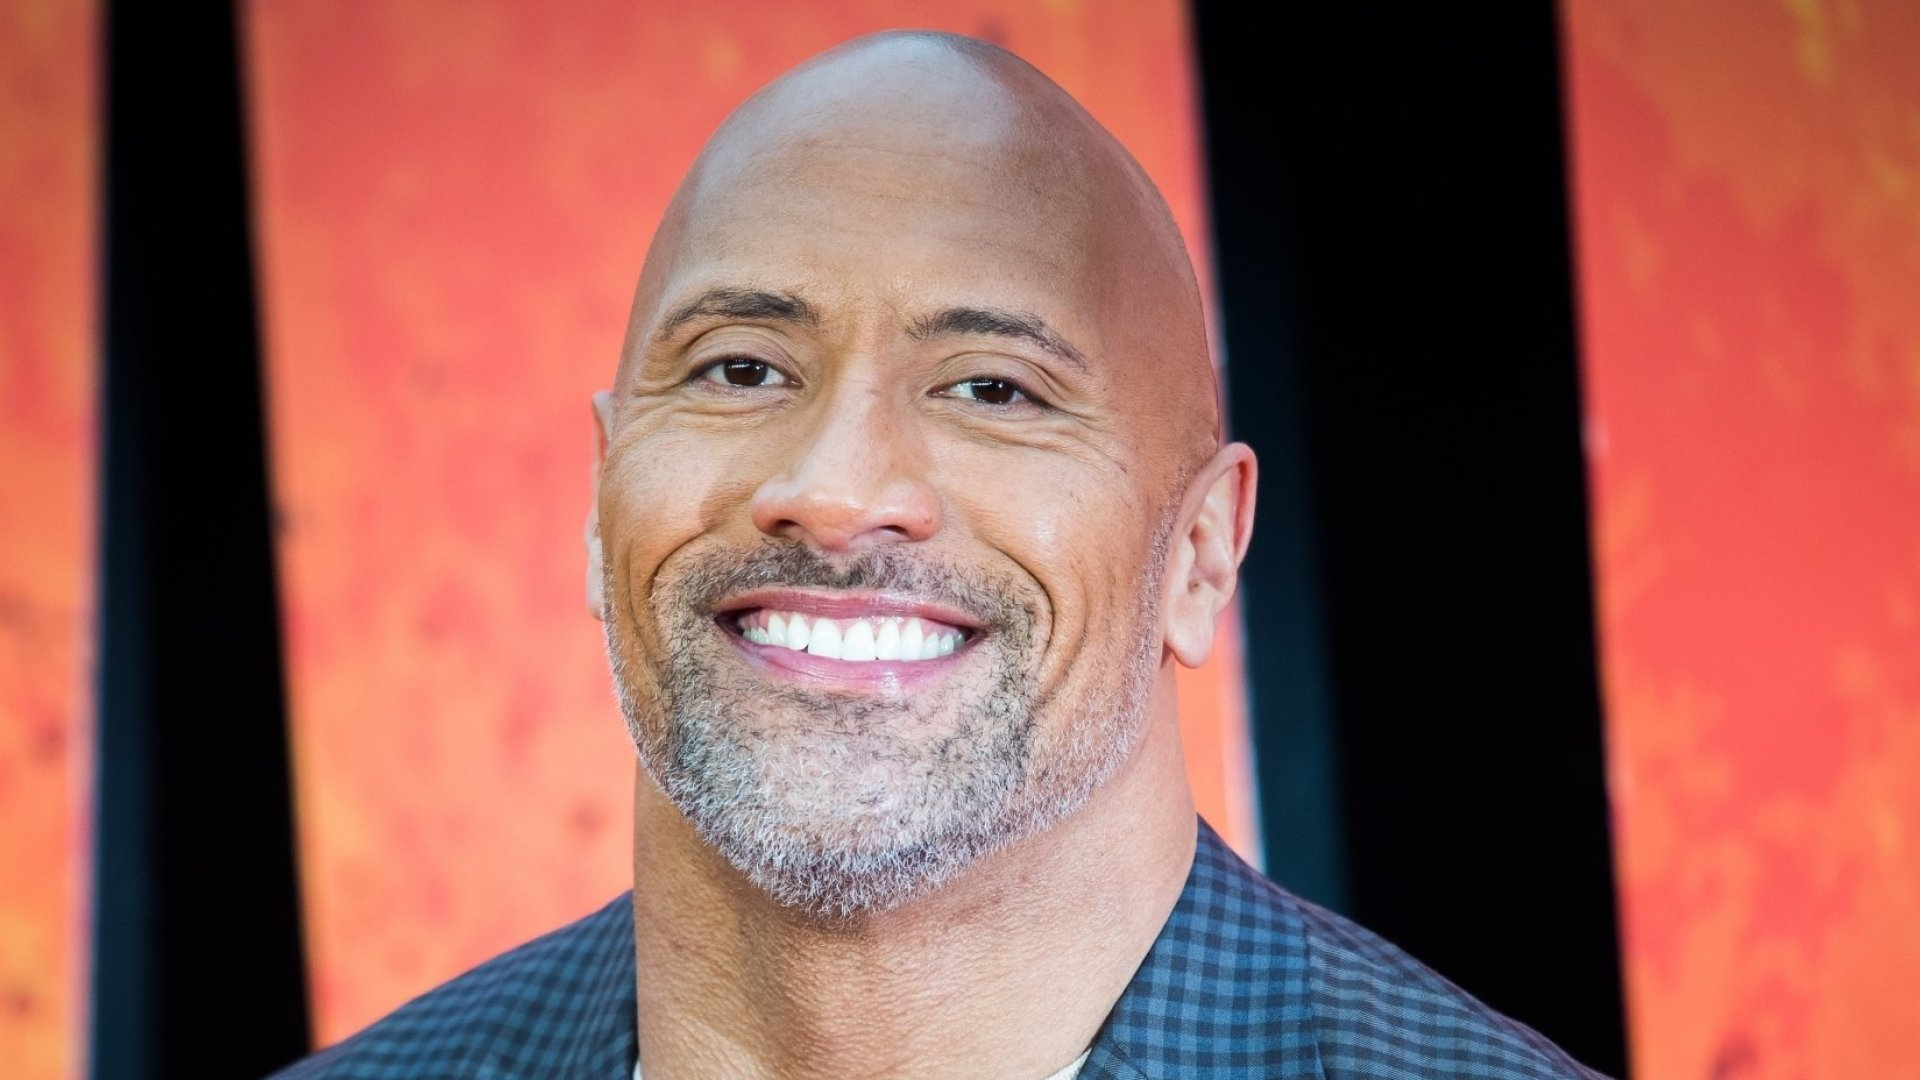 Dwayne 'The Rock' Johnson Has Become a Hugely Successful Entrepreneur. This Savvy Strategy Is Why